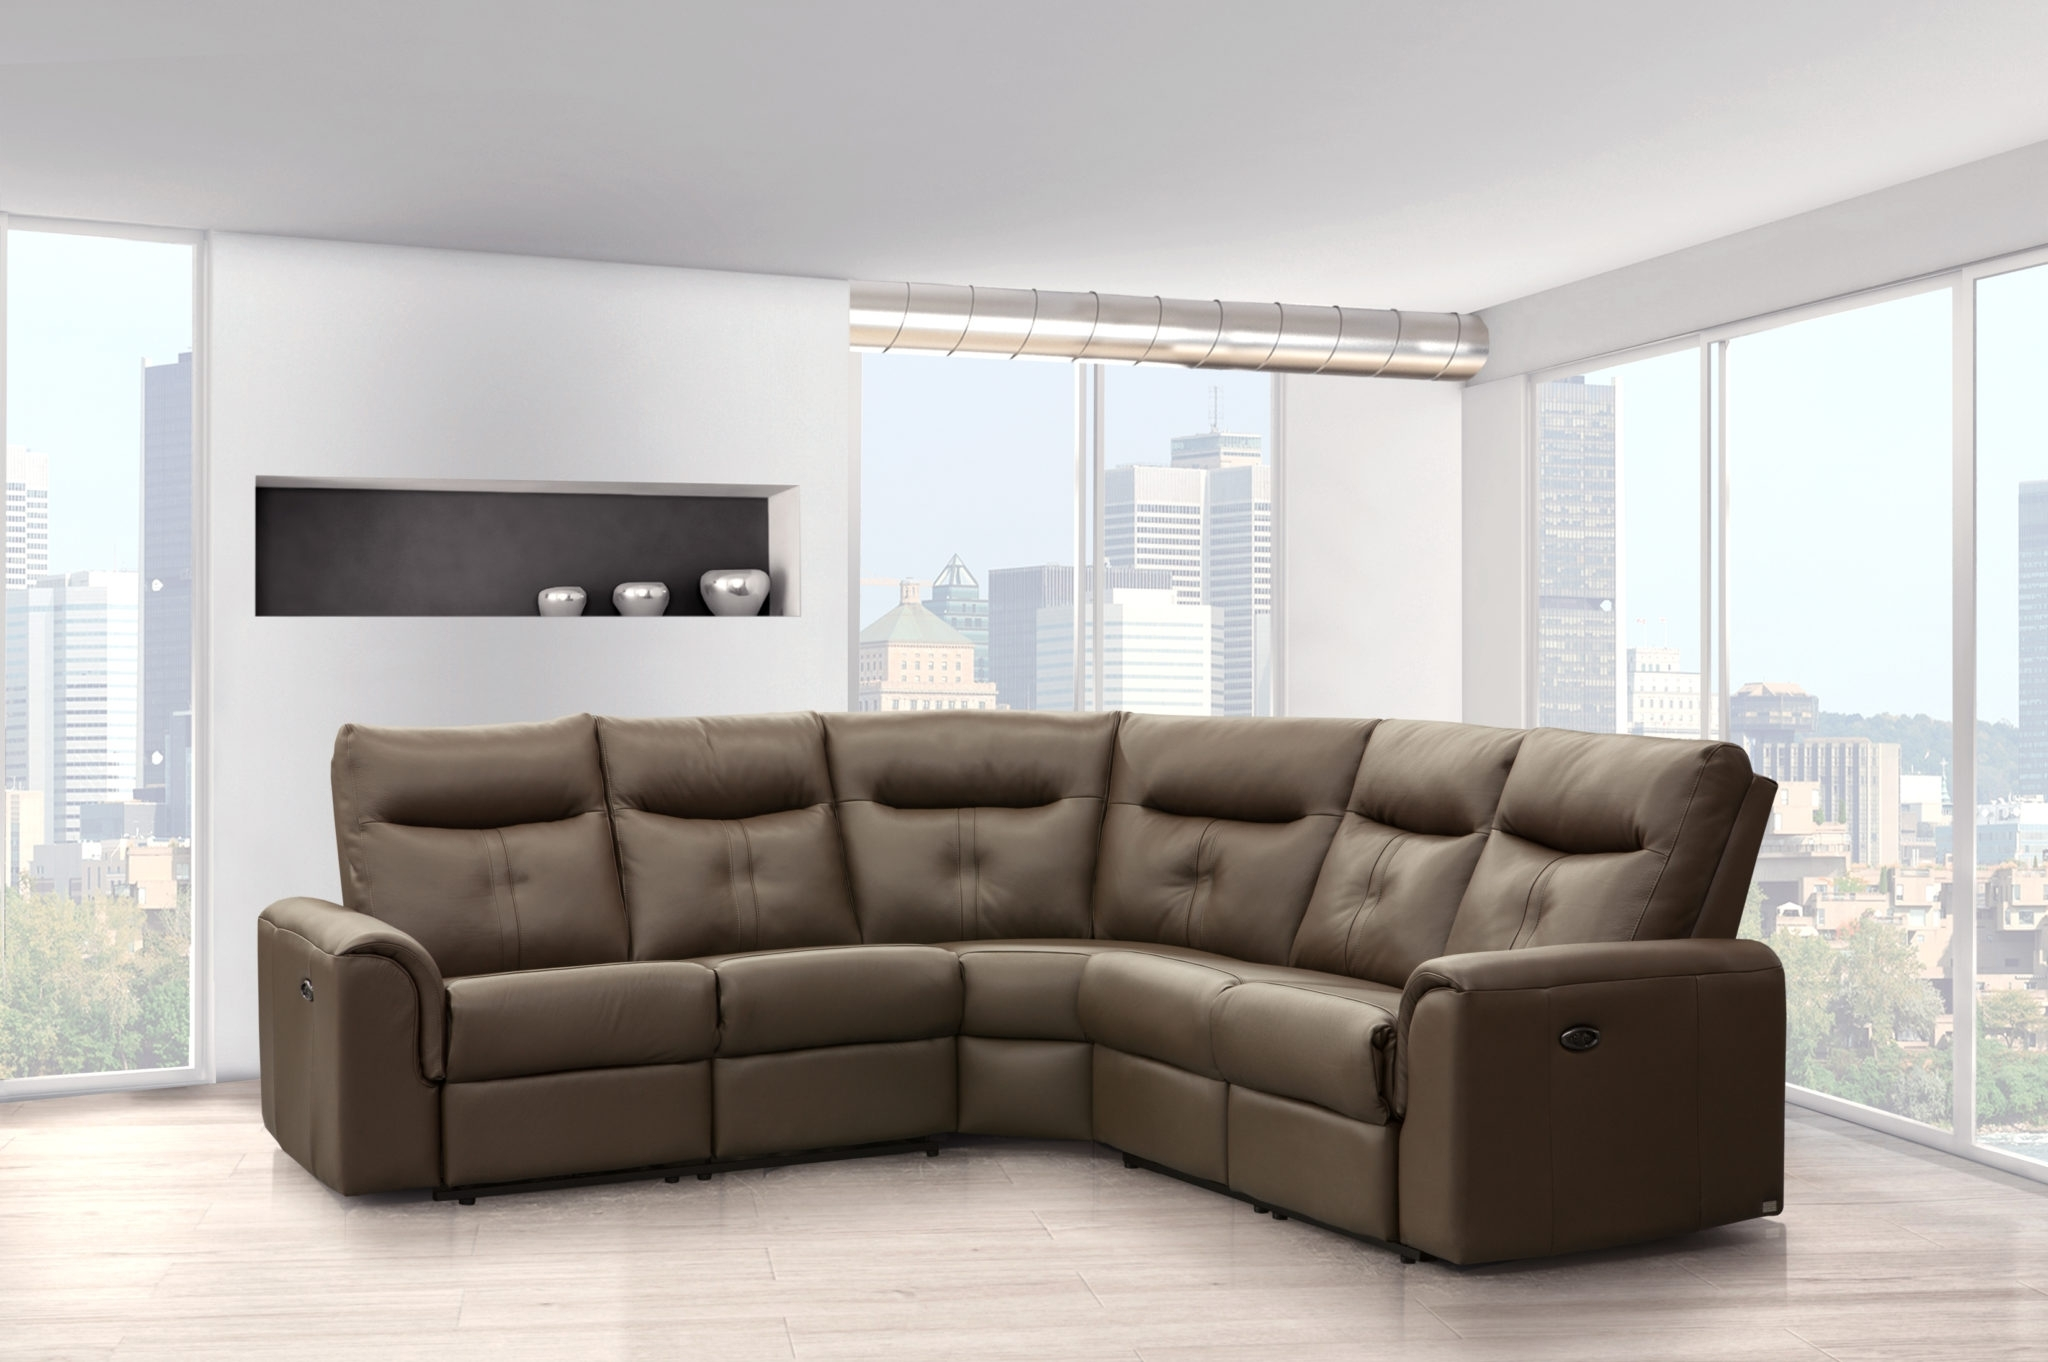 Newfoundland Sectional Sofas Intended For Best And Newest Elran 4016 Electric Reclining Leather Sectional (View 14 of 20)